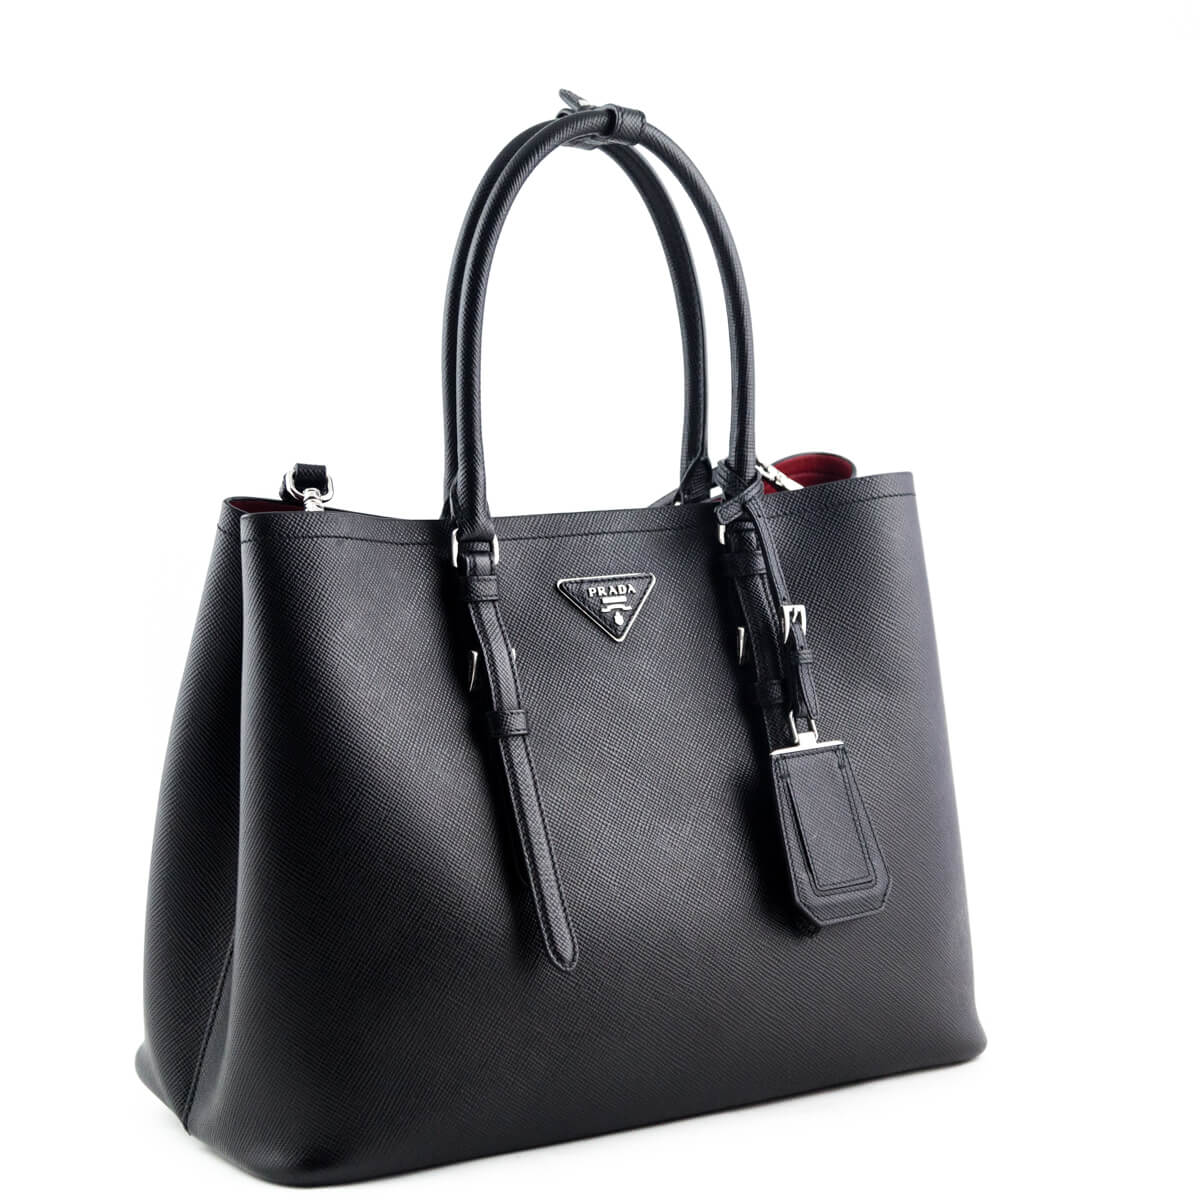 0ce91cd9659c ... Prada Black Saffiano Double Bag - LOVE that BAG - Preowned Authentic  Designer Handbags ...